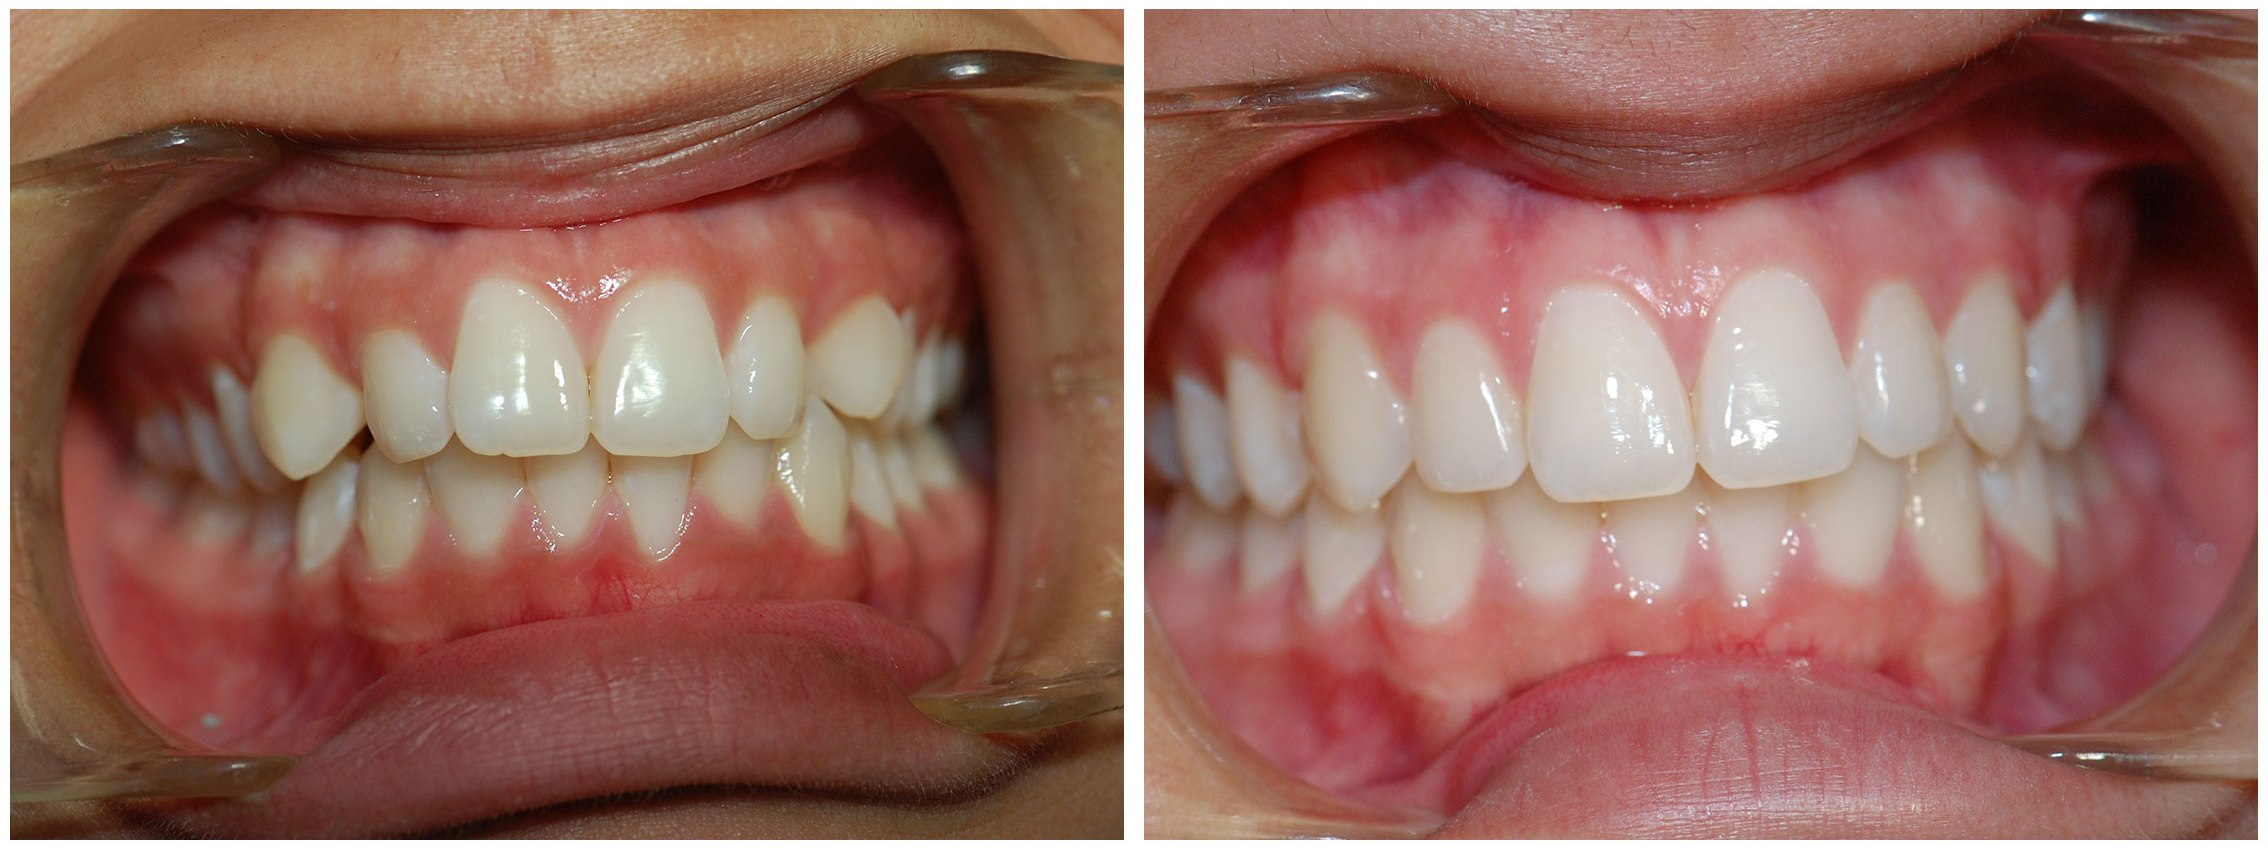 Pediatric Dental Braces Before & After